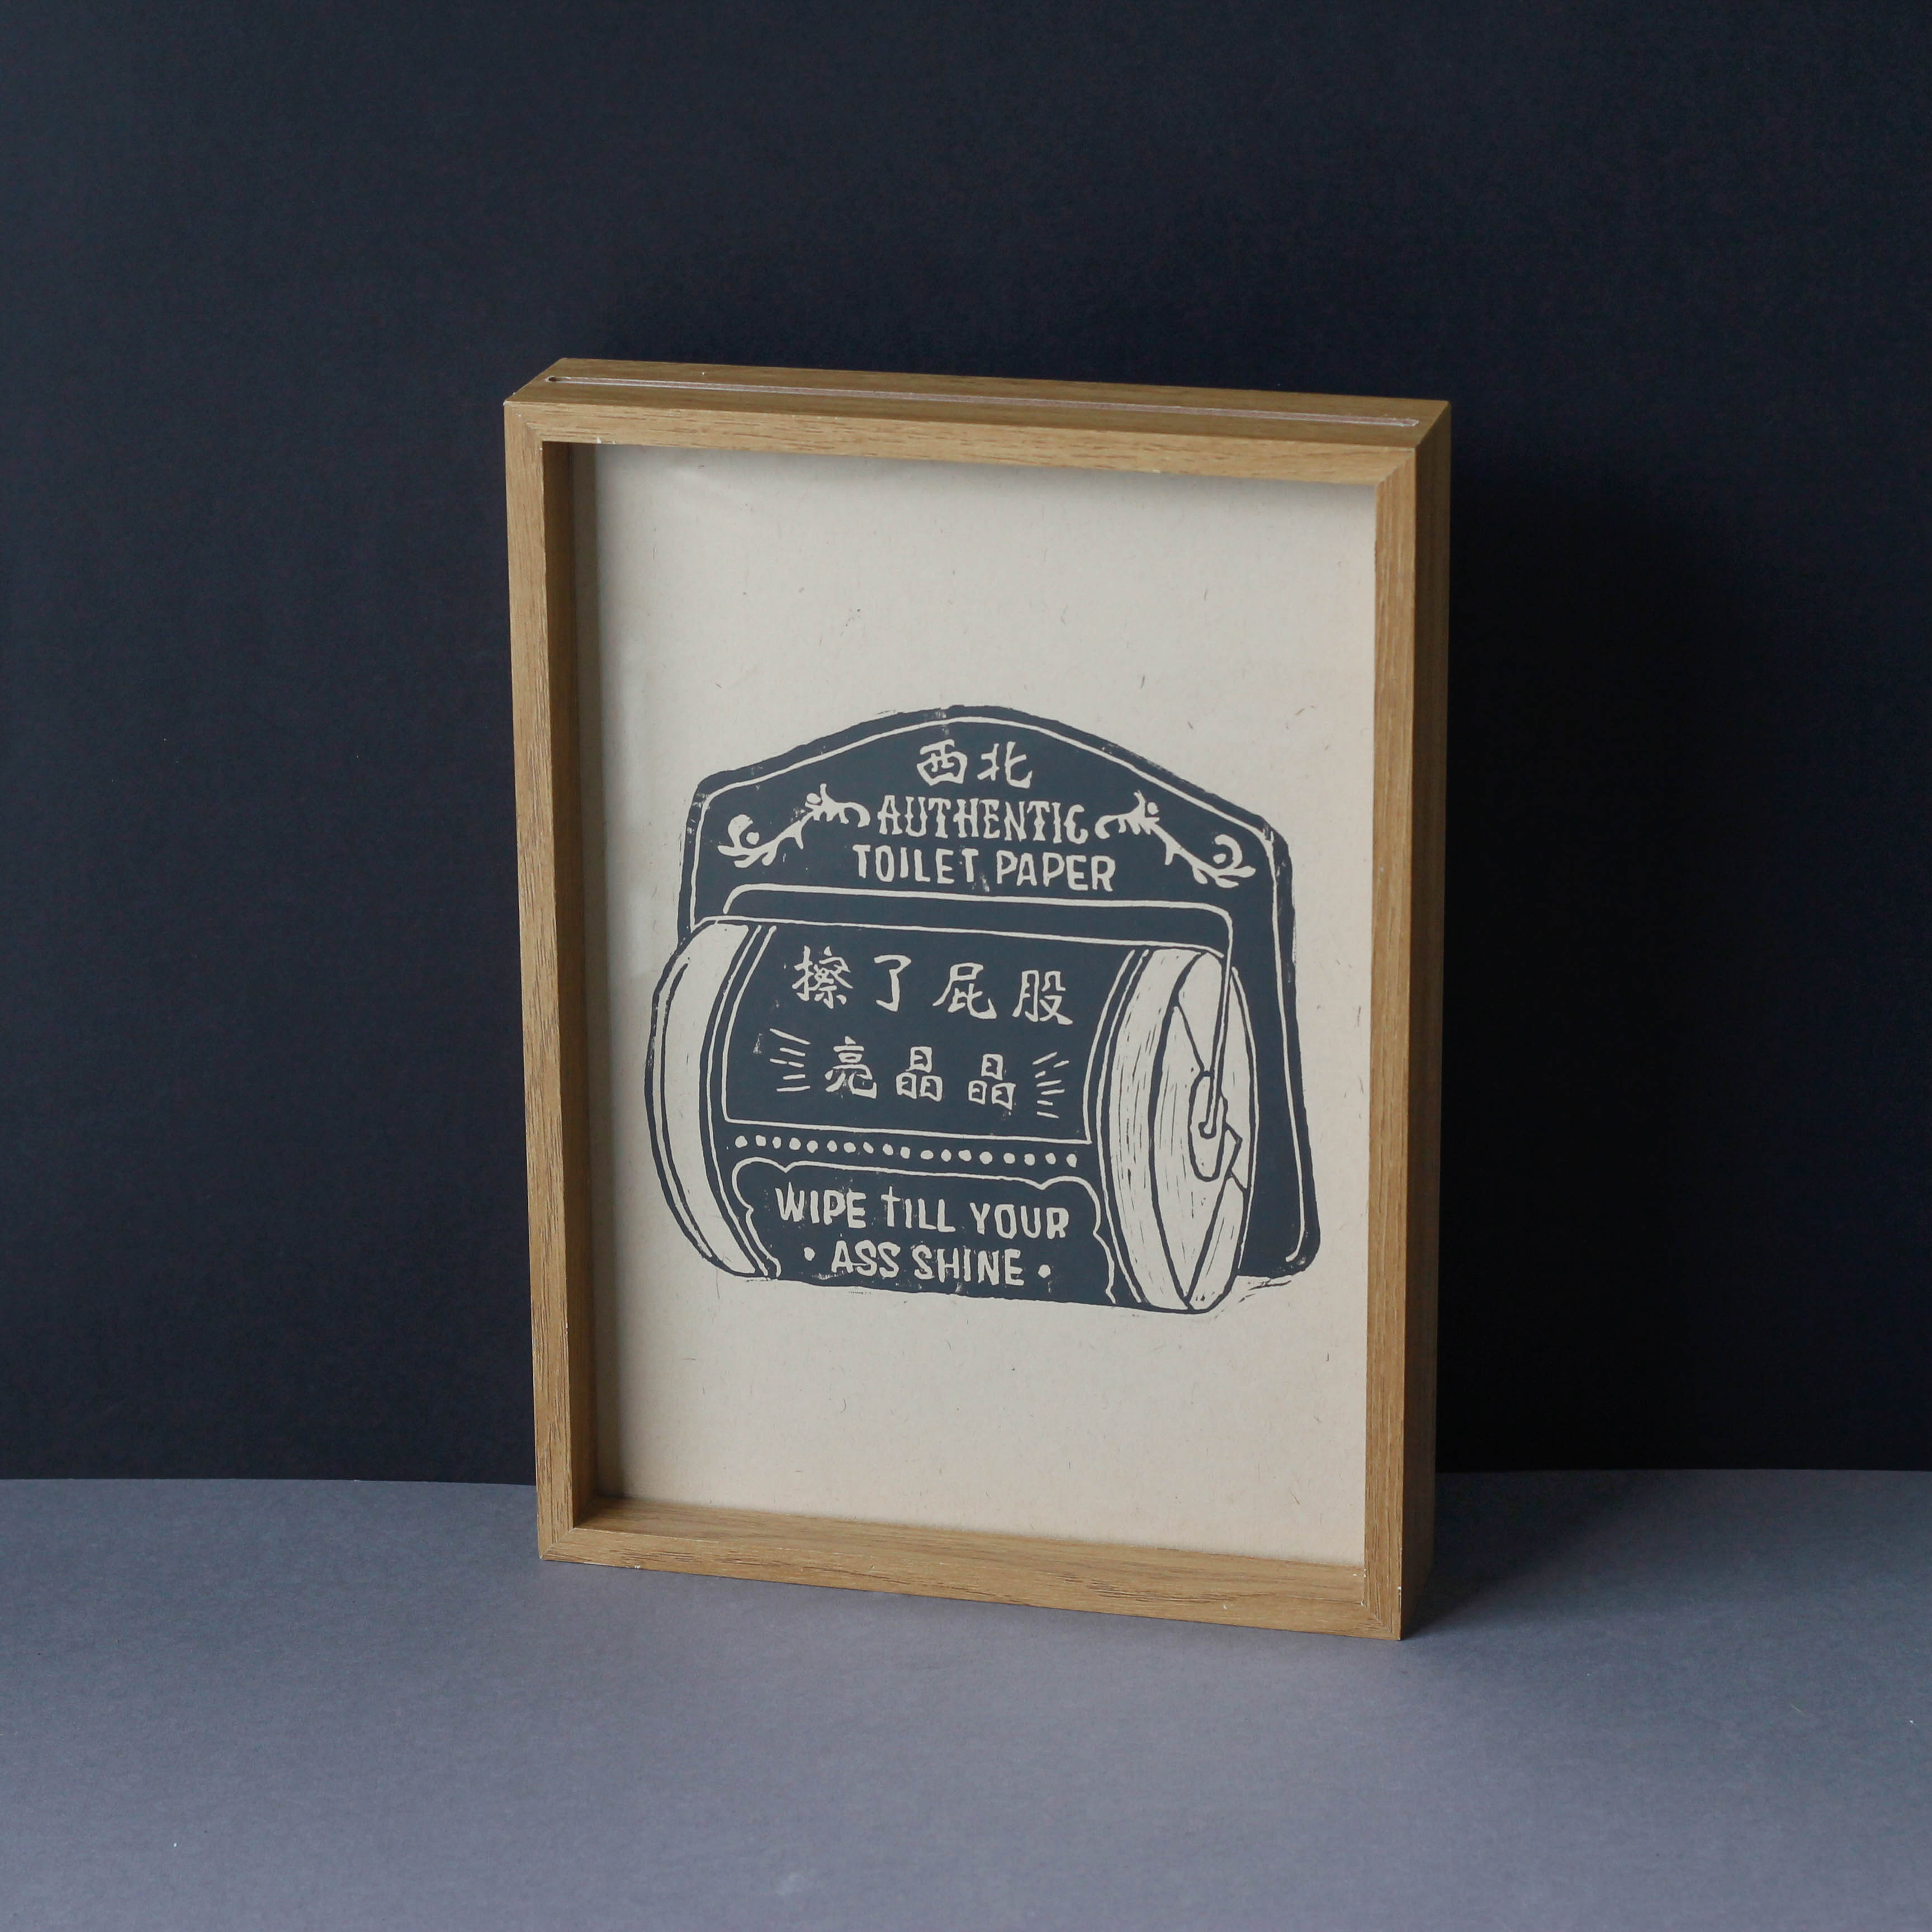 Sibei Authentic - Toilet Paper Linocut